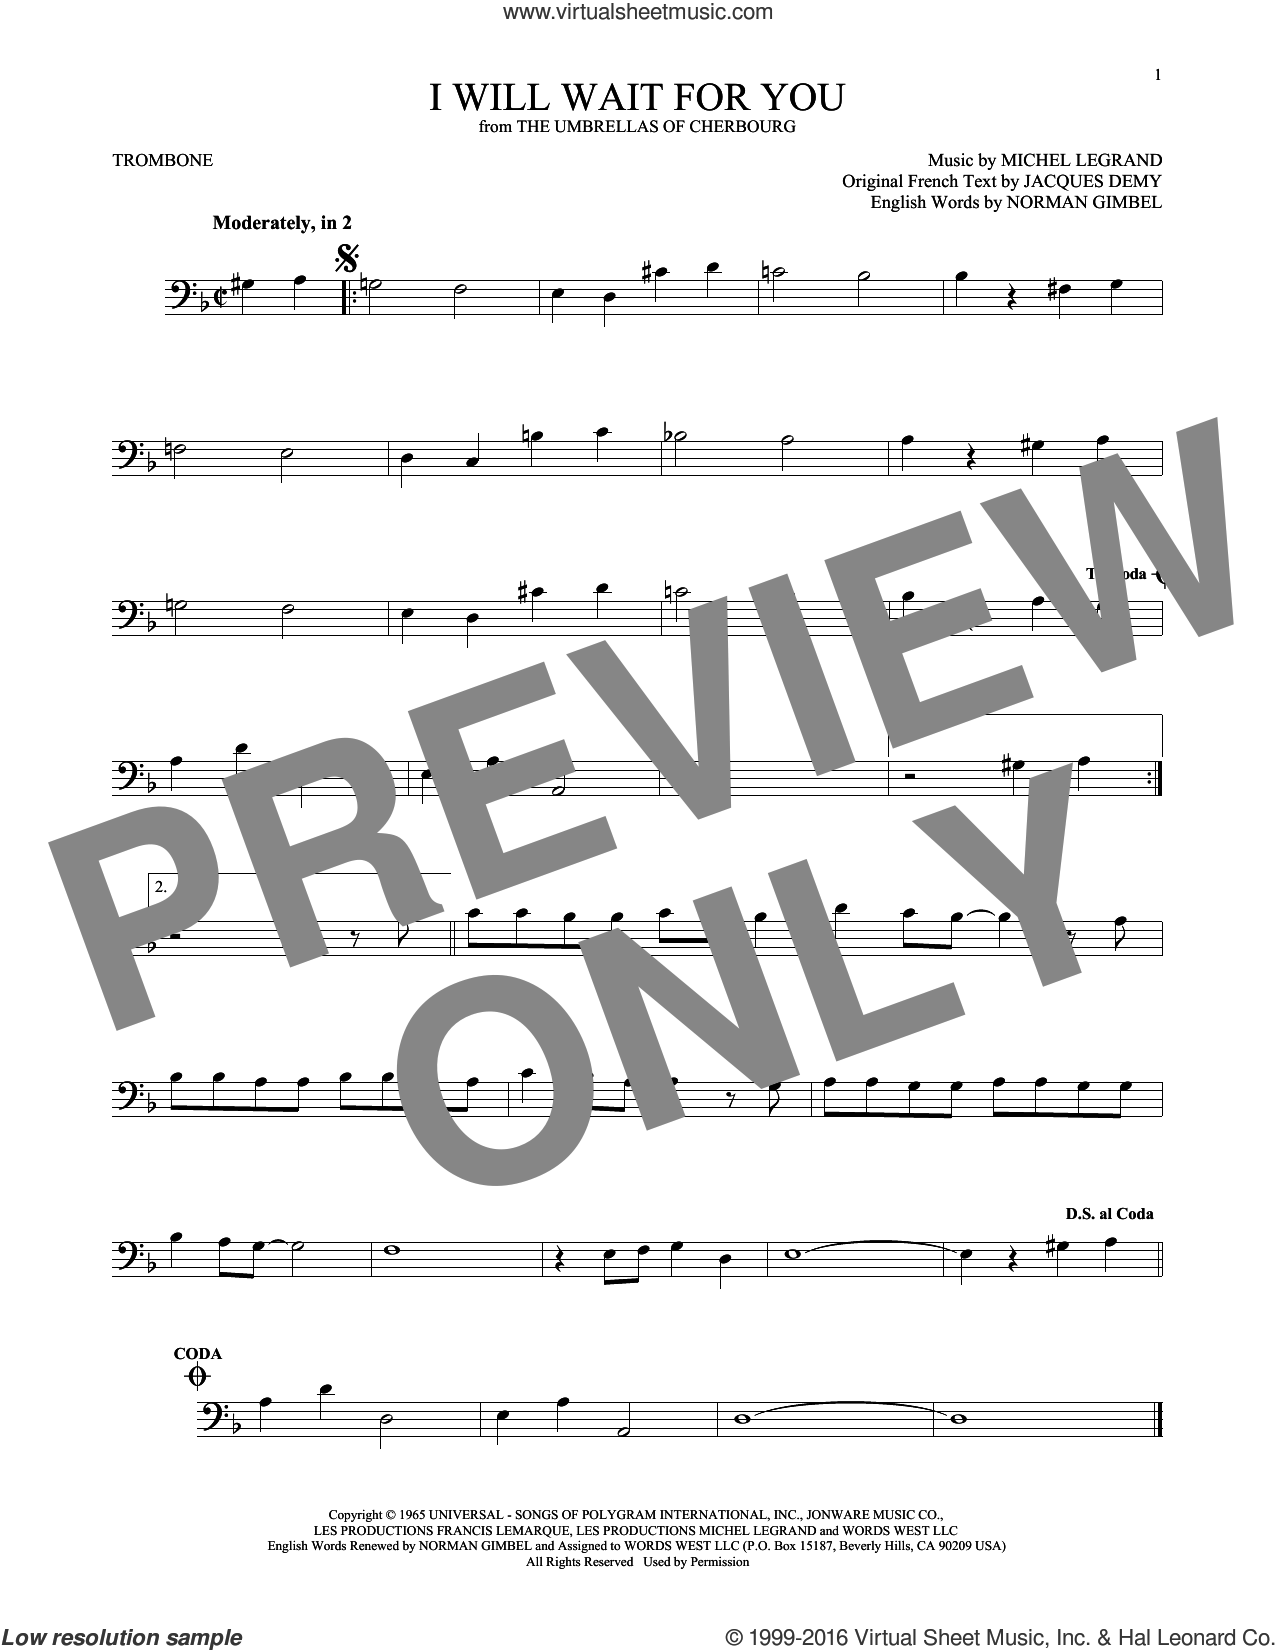 I Will Wait For You sheet music for trombone solo by Michel Legrand, Jacques Demy and Norman Gimbel, intermediate skill level